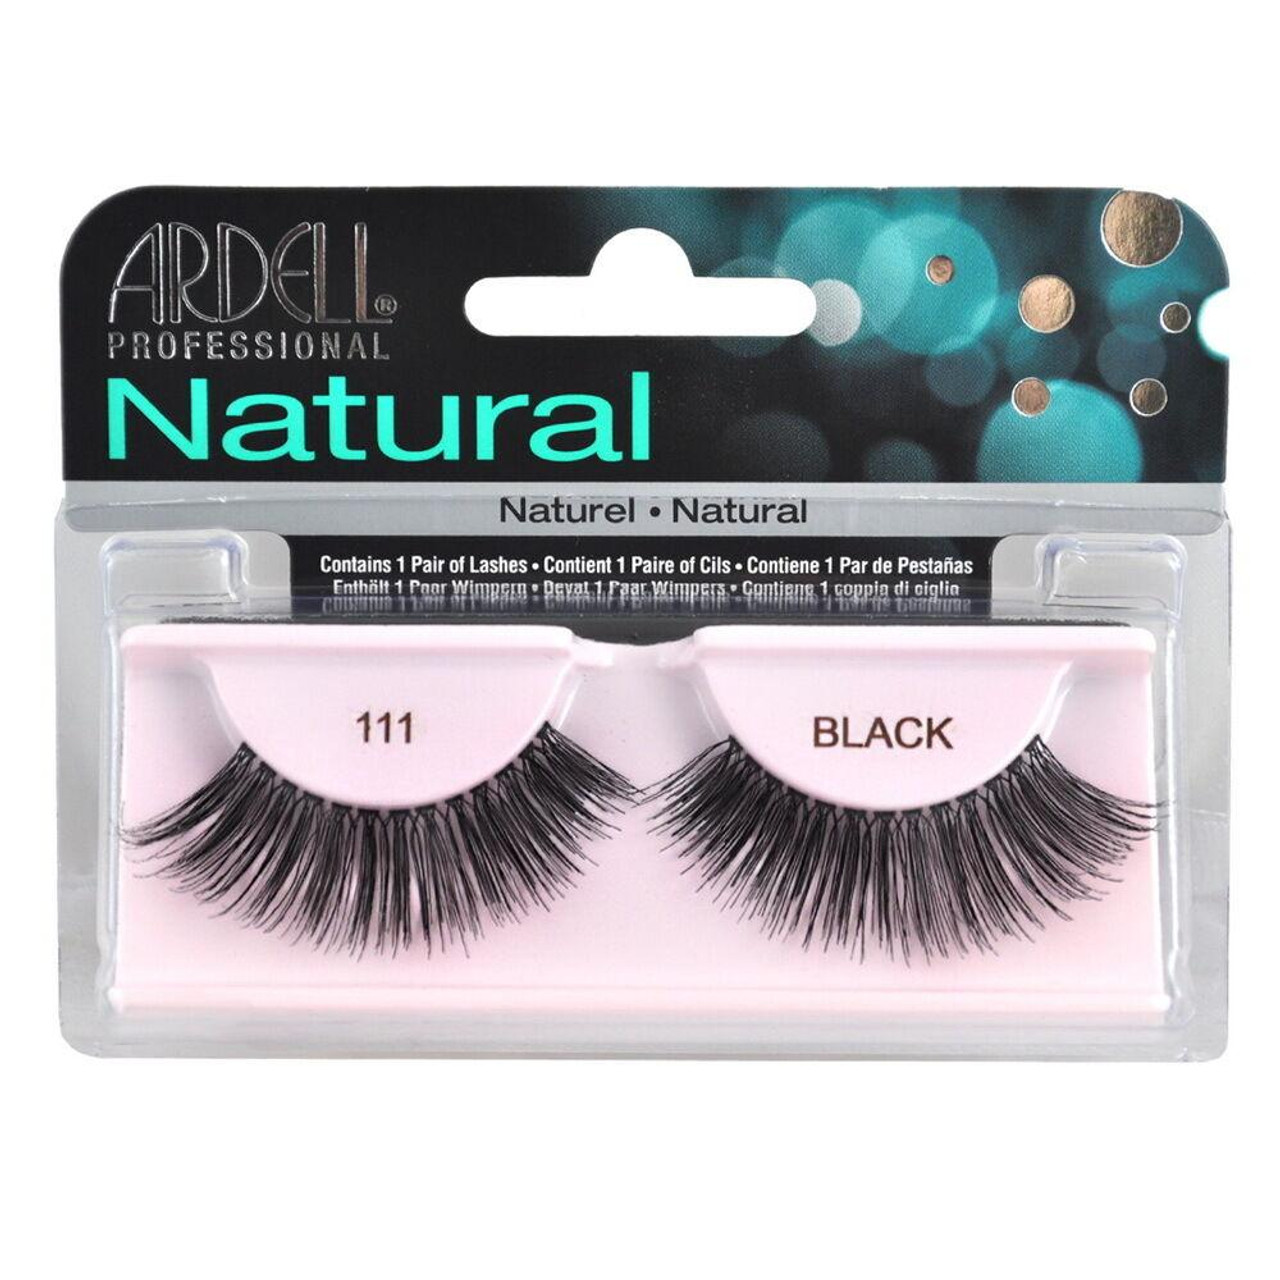 1f31bb1d0e8 2 Pairs x Ardell Natural Lashes #111 False Eyelashes Fake Lash Eyelash Black  - BeautyChain